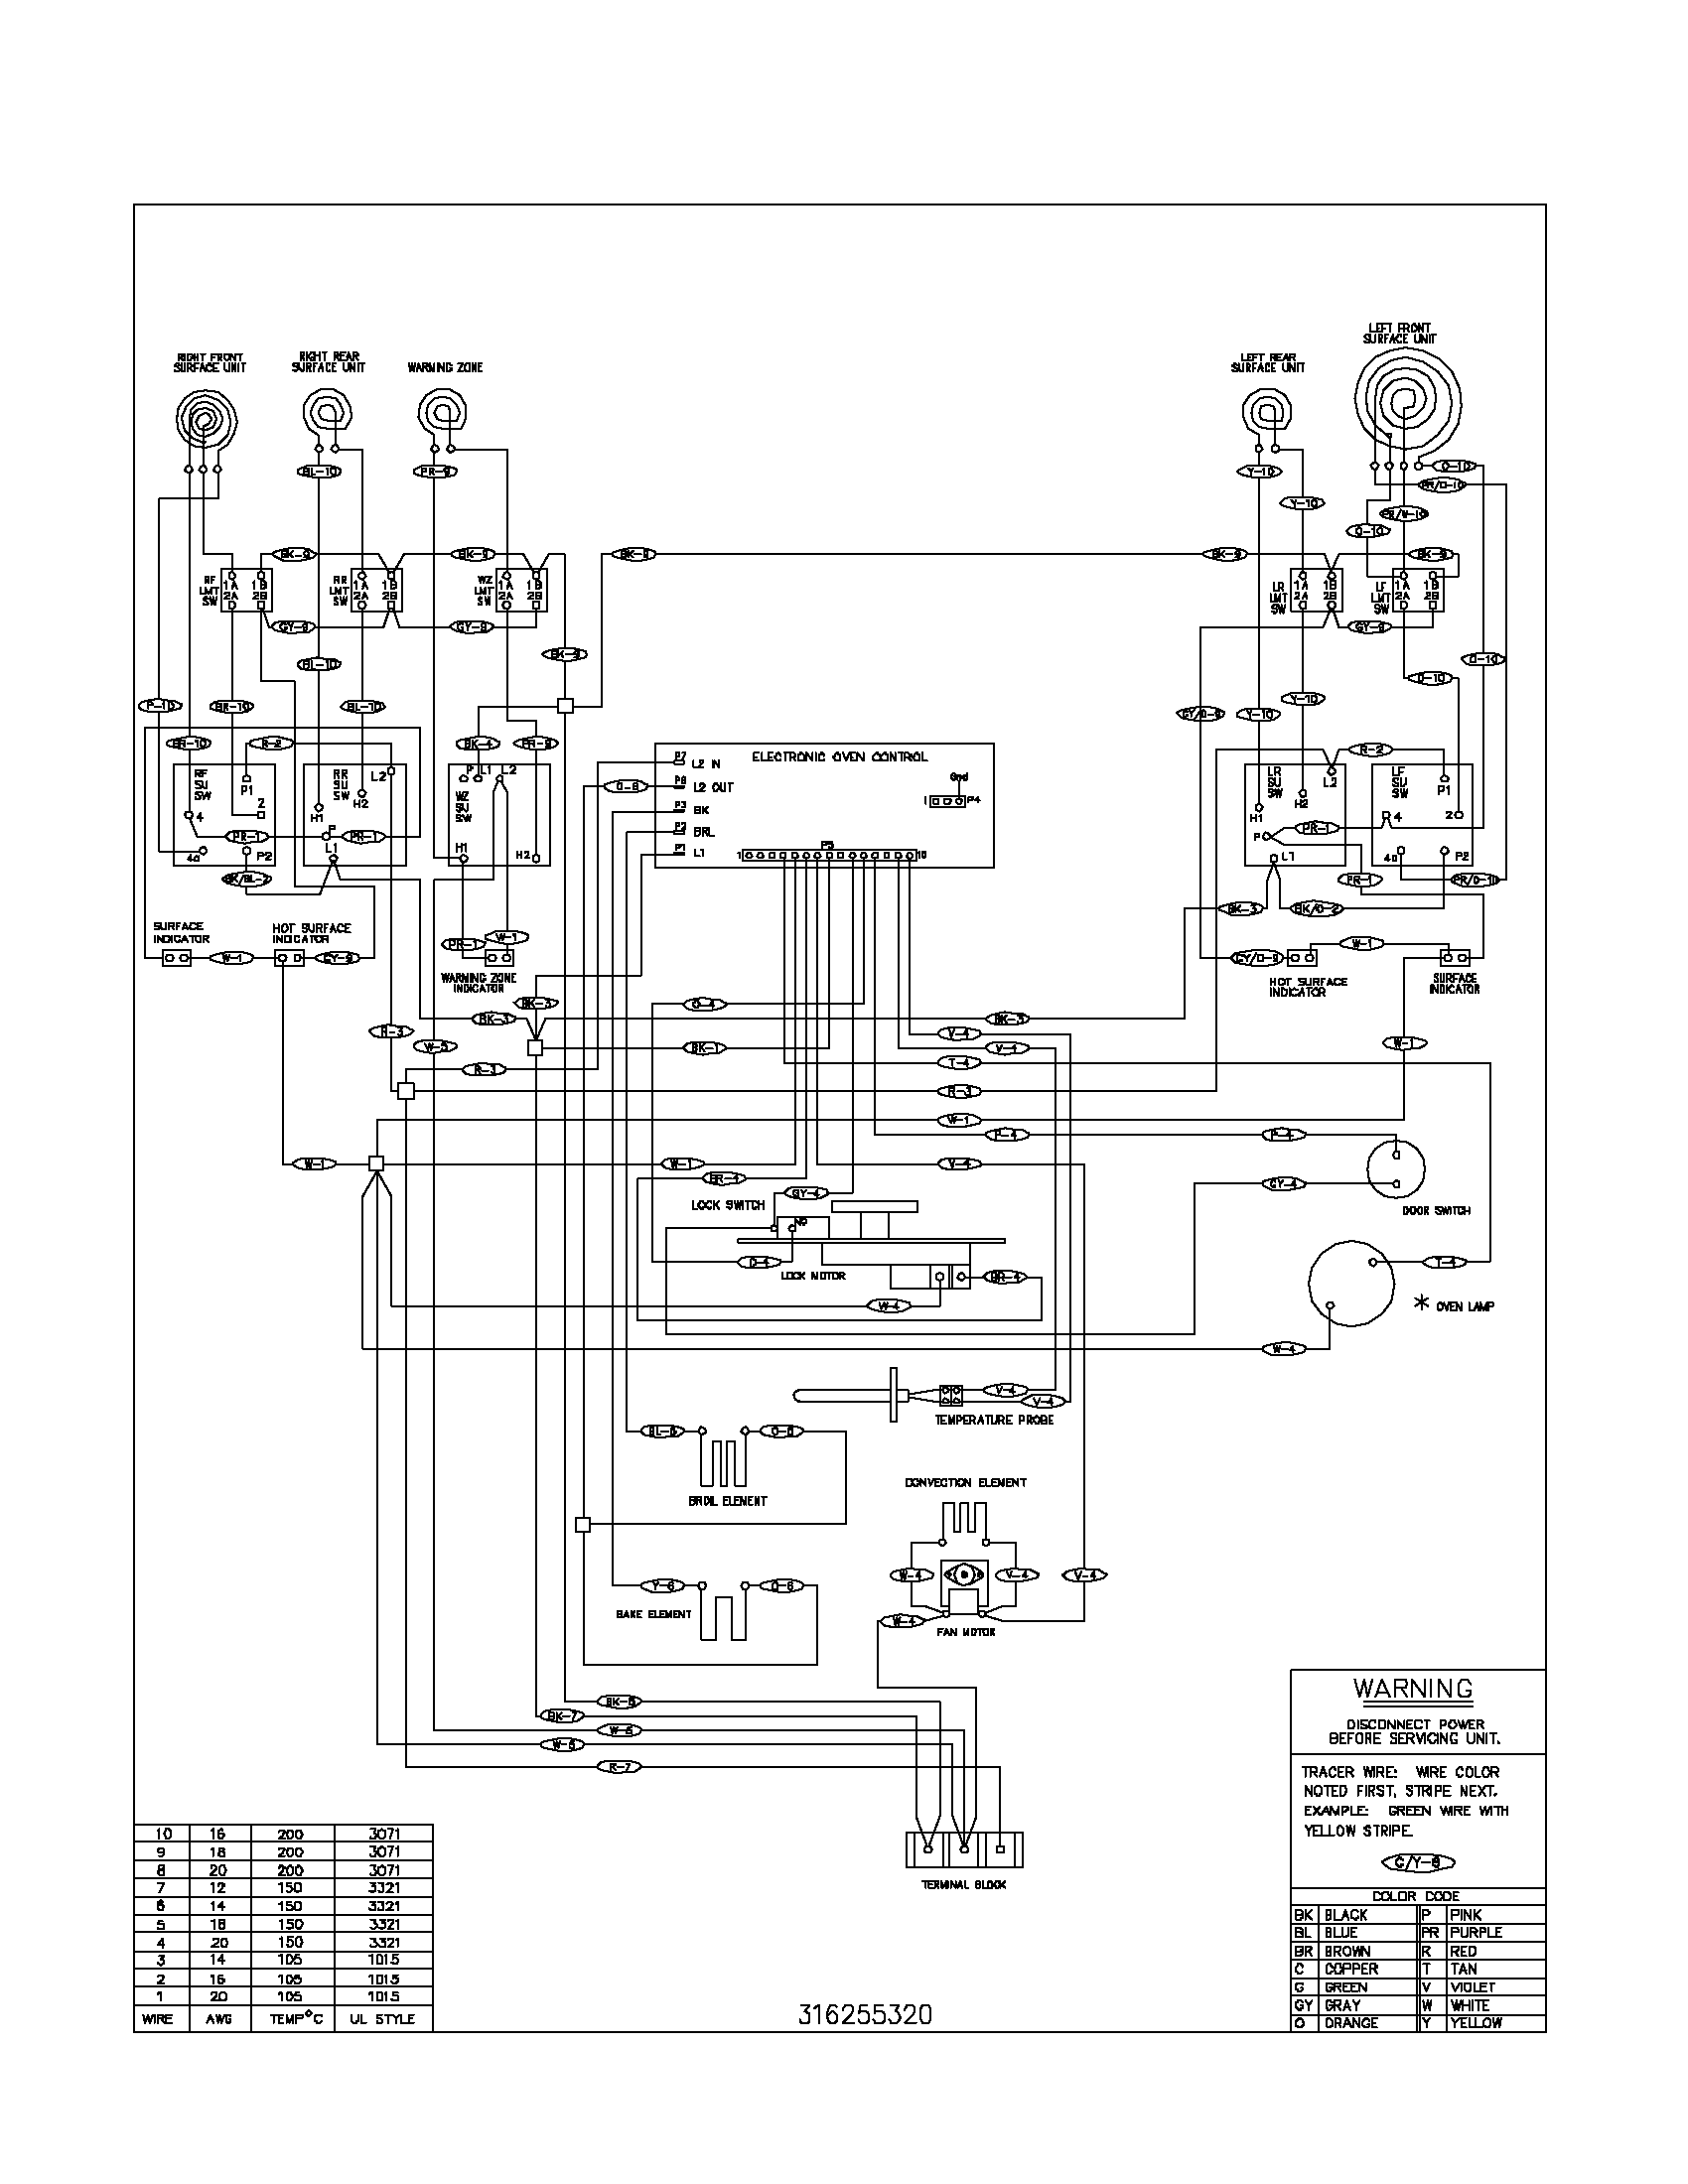 wiring diagram parts ge monogram oven wiring diagram on ge download wirning diagrams ge refrigerator ice maker wiring diagram at soozxer.org